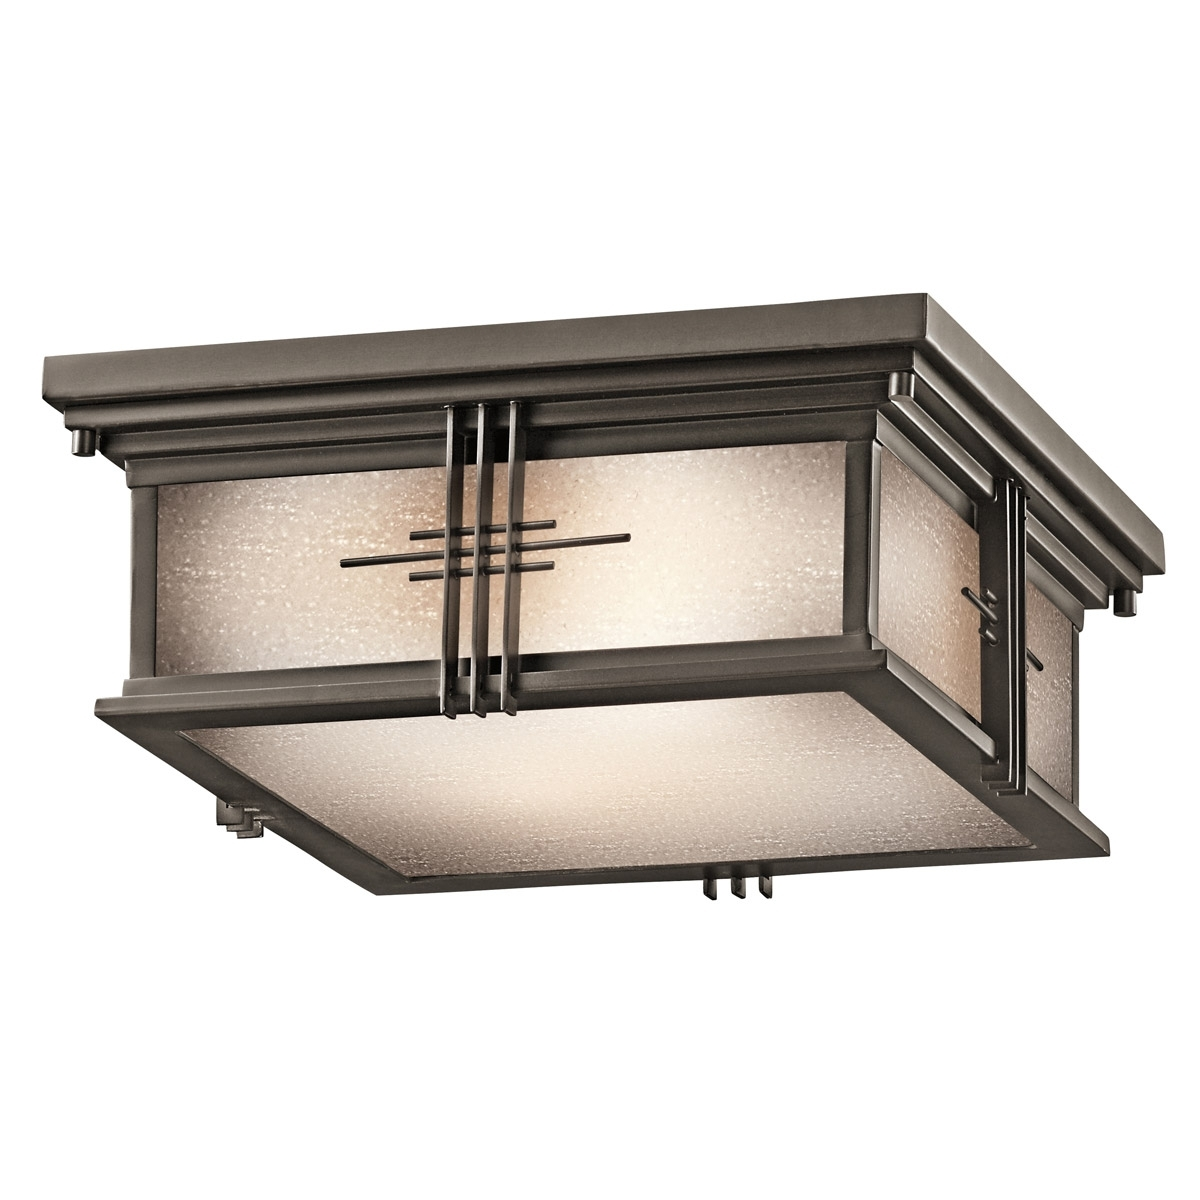 49164Oz Portman Square Outdoor Flush Mount Ceiling Fixture Inside Latest Rustic Outdoor Ceiling Lights (Gallery 11 of 20)